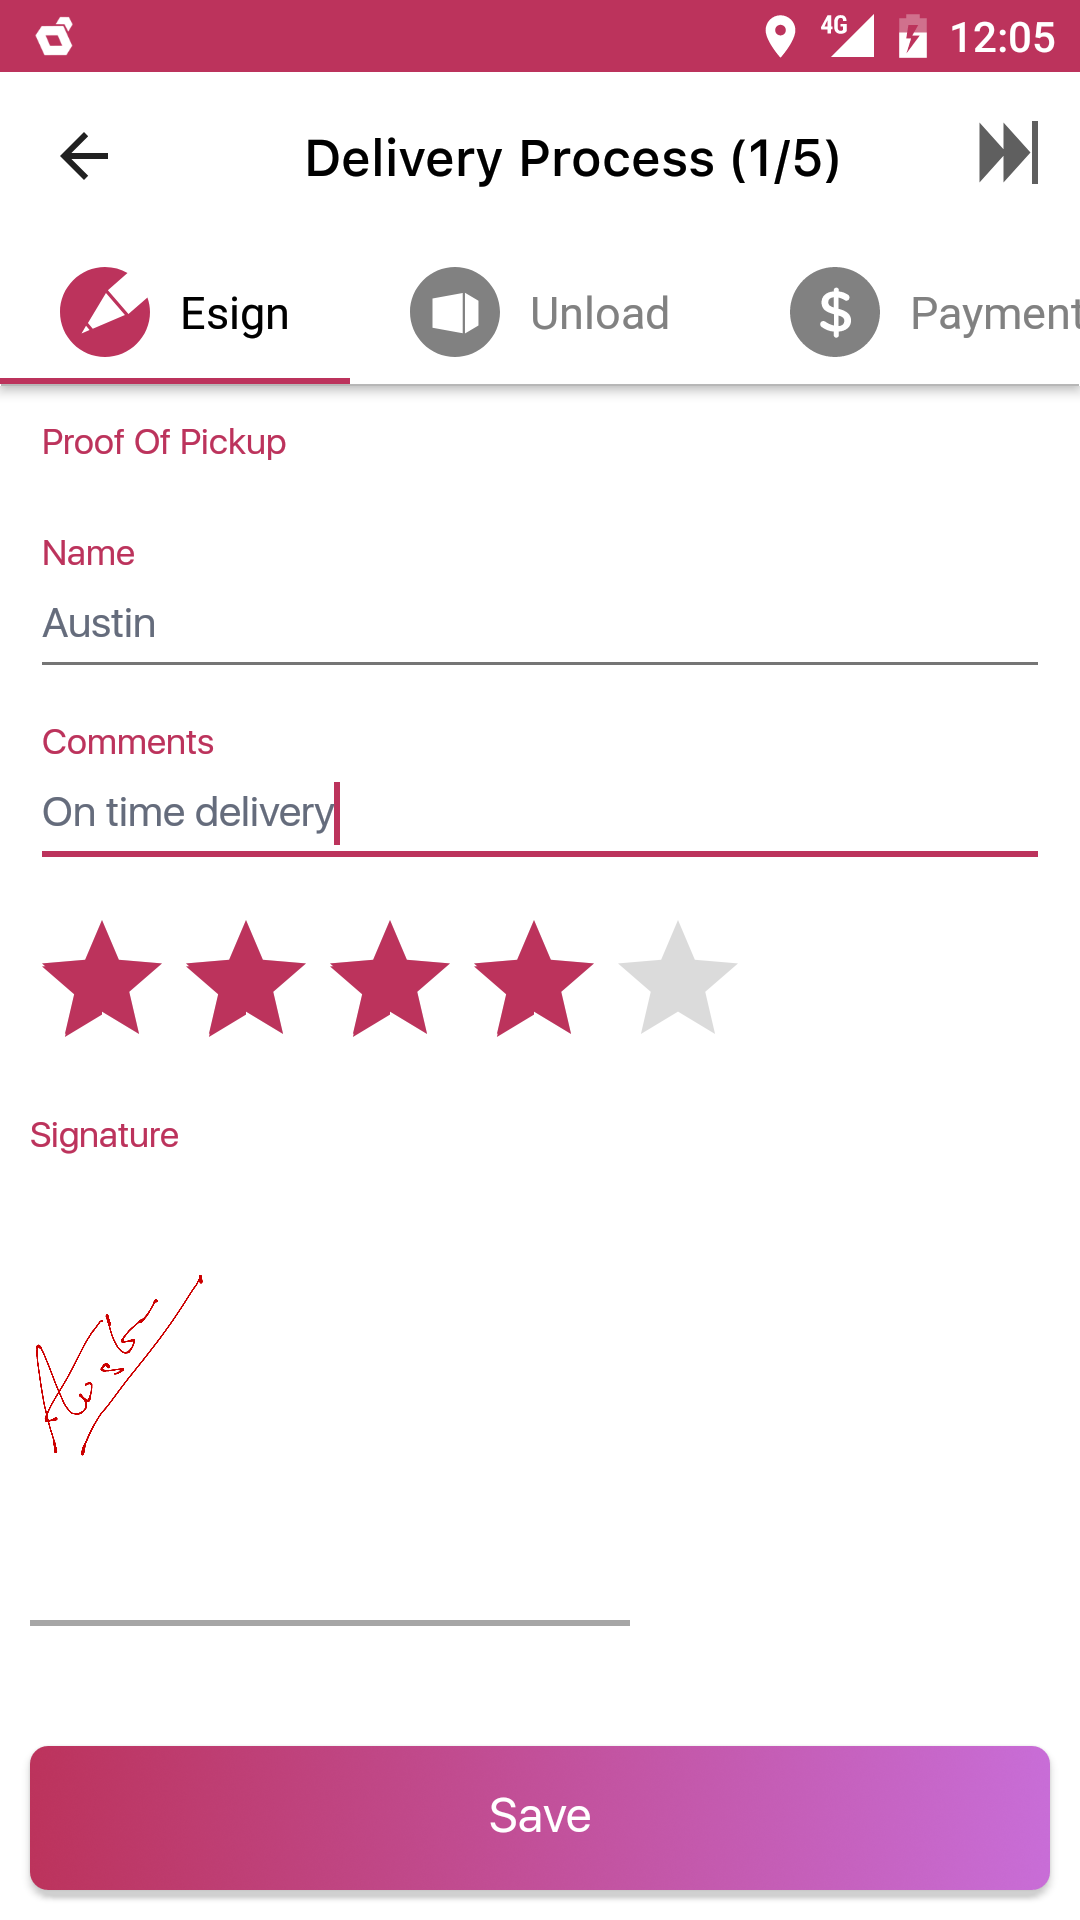 Delivery details and proof of delivery capturing process